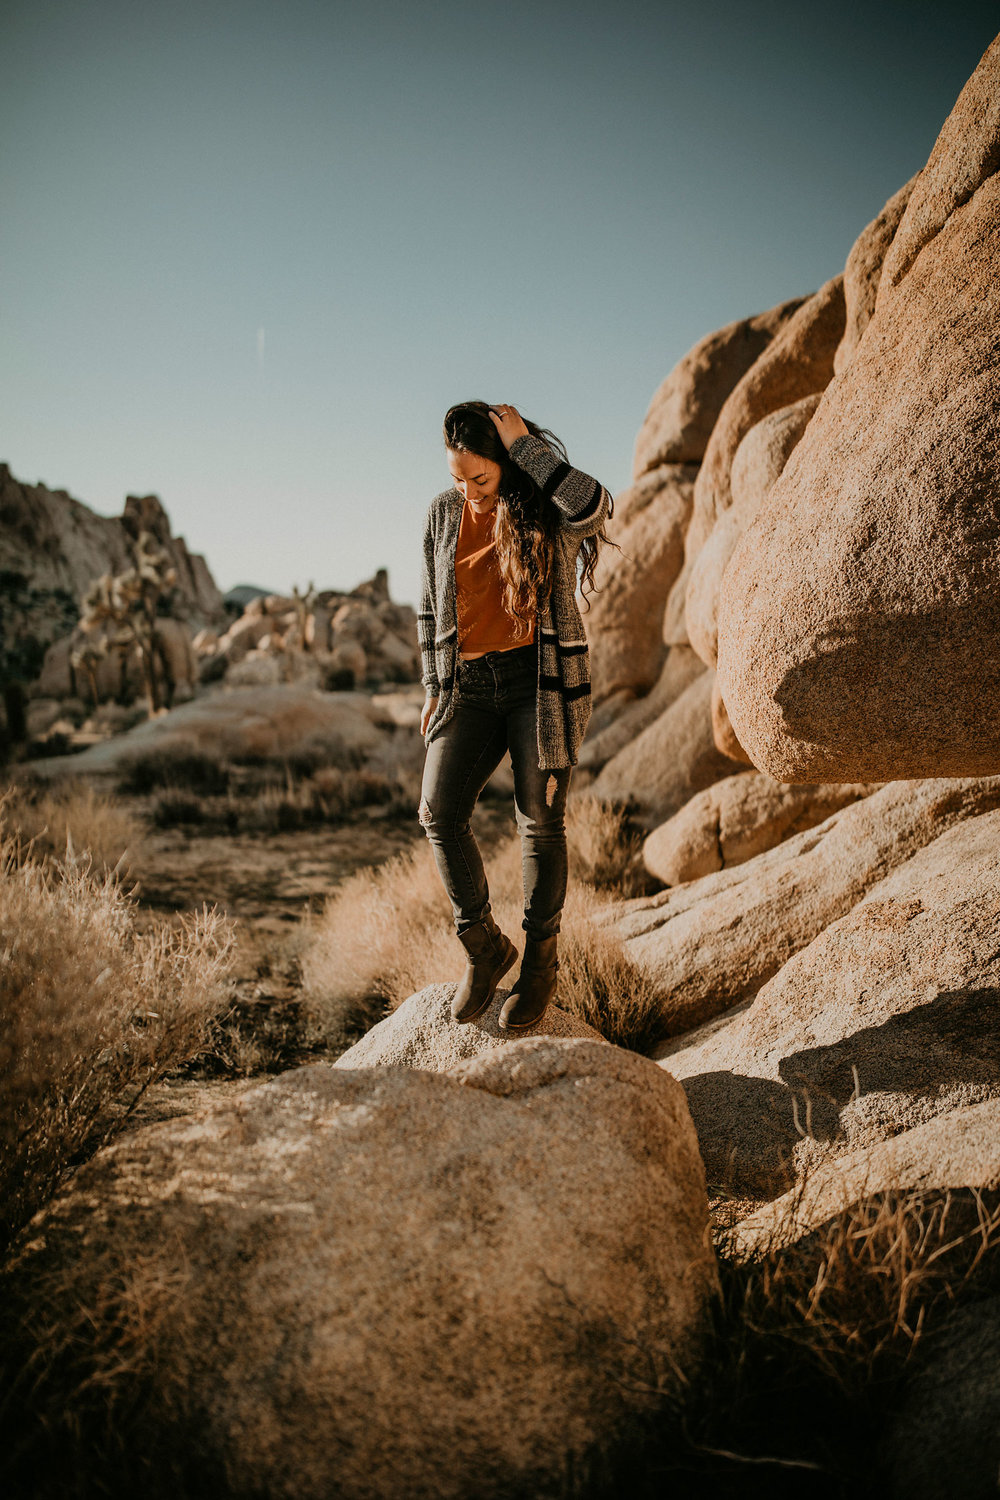 Joshua-Tree-Travel-Photographer-Self-Portraits-06.jpg